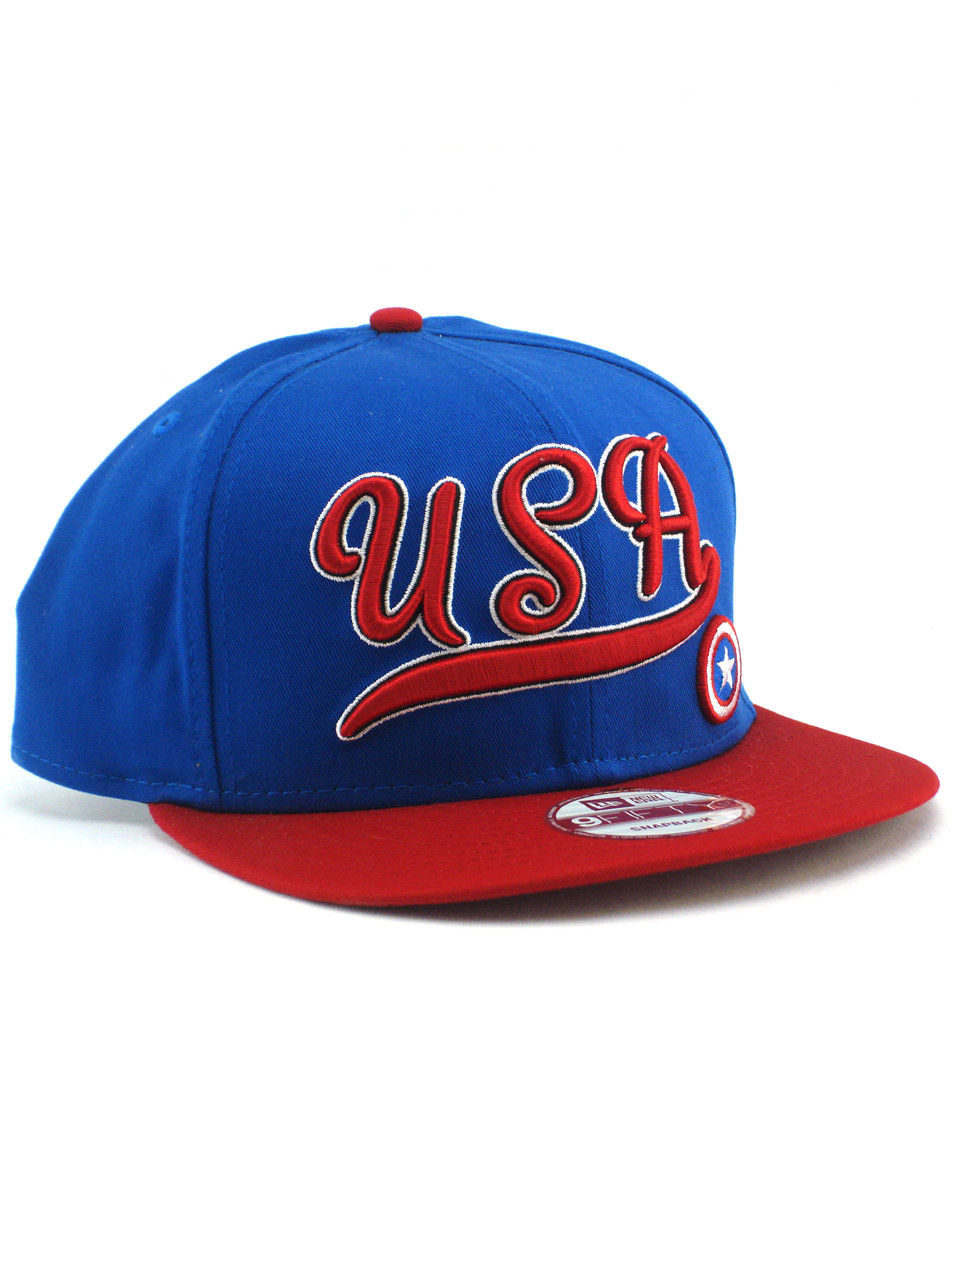 New Era USA Captain America 9fifty Snapback Hat View 1 d28f2a15f51